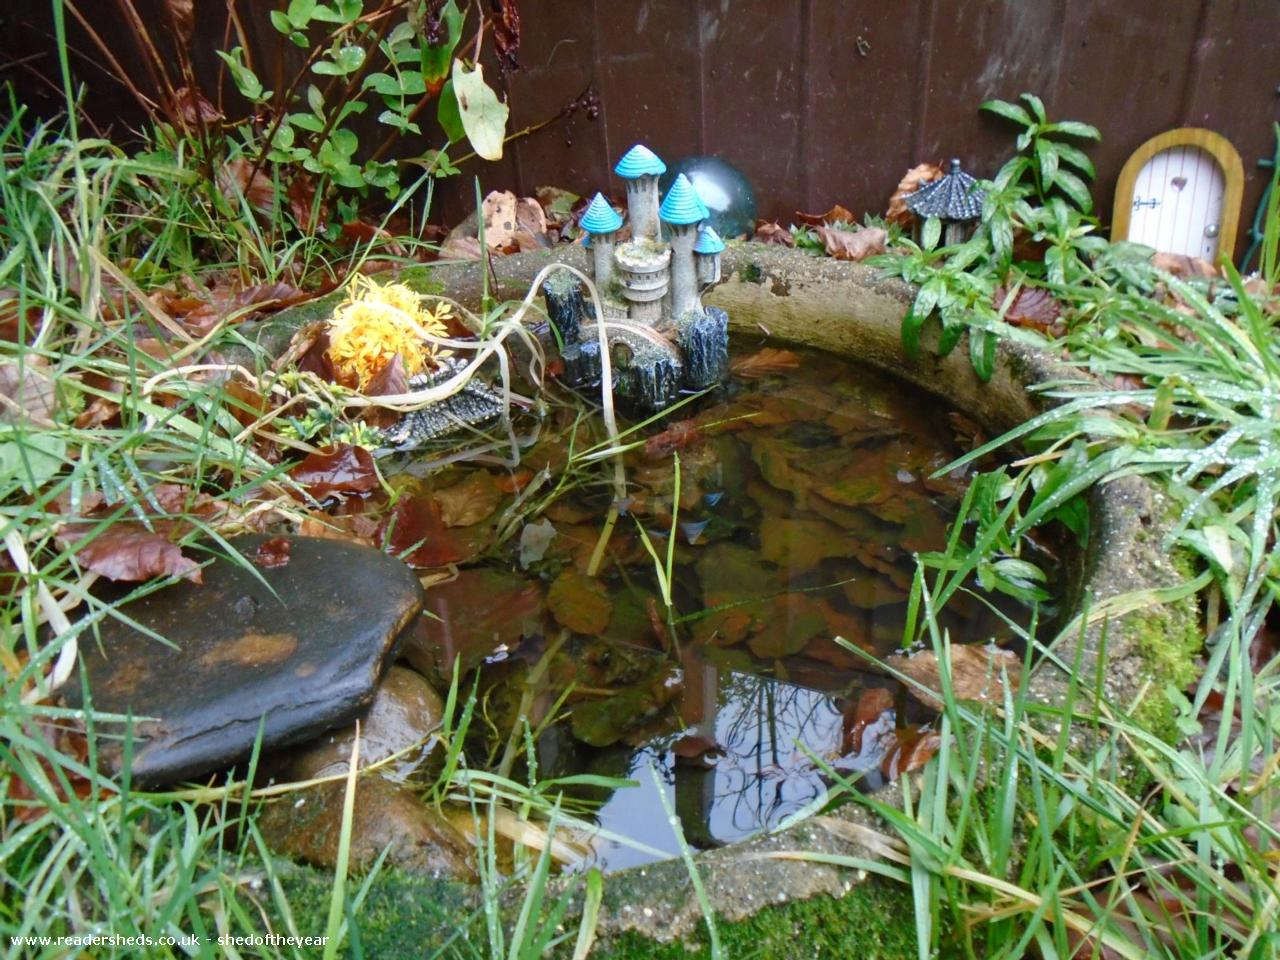 Photo of Ellie's Den, entry to Shed of the year-Frog's pond